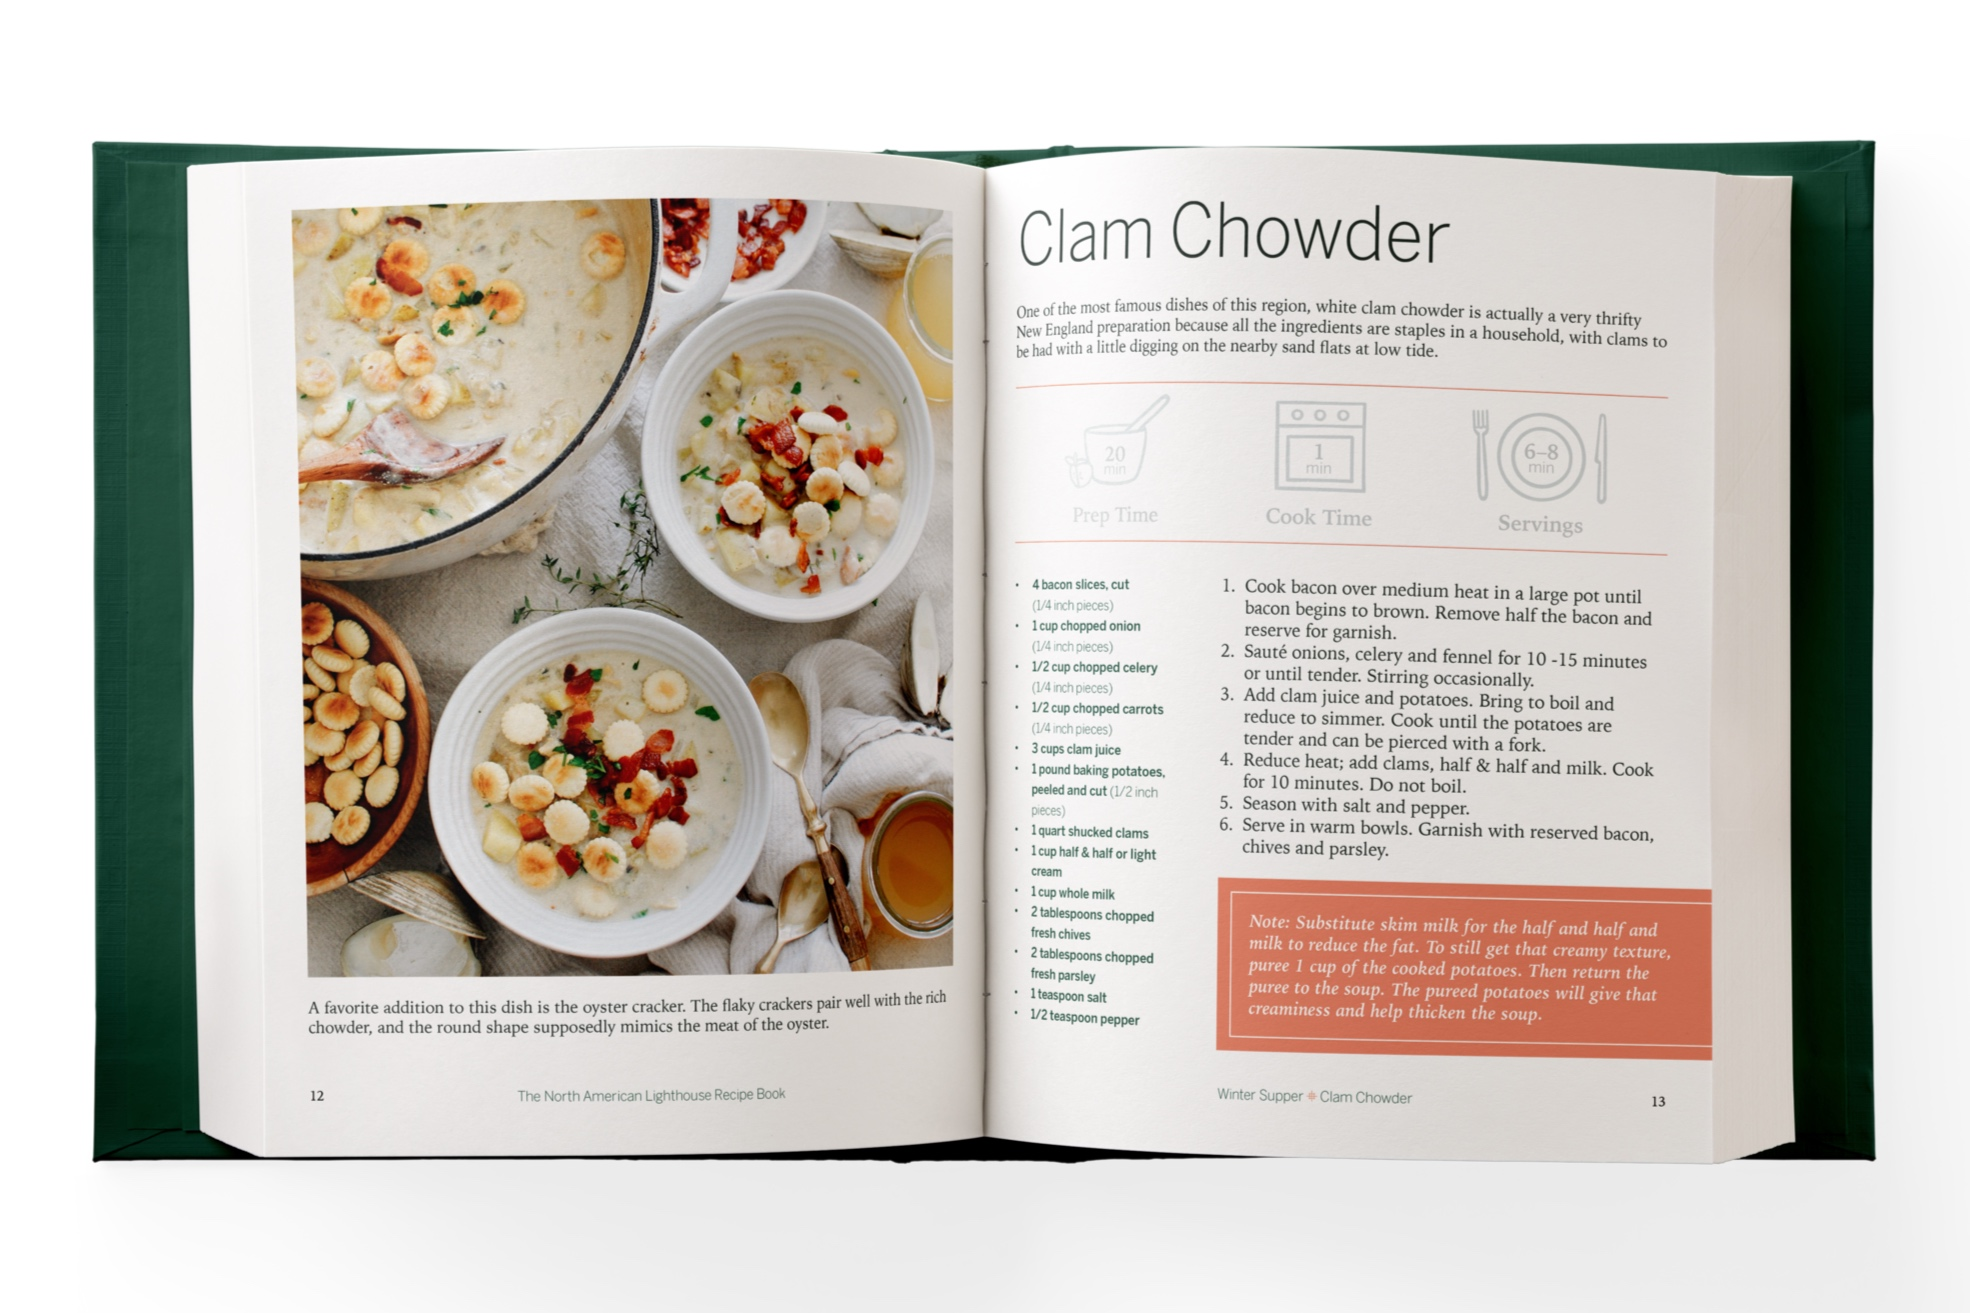 A recipe page for New England Clam Chowder